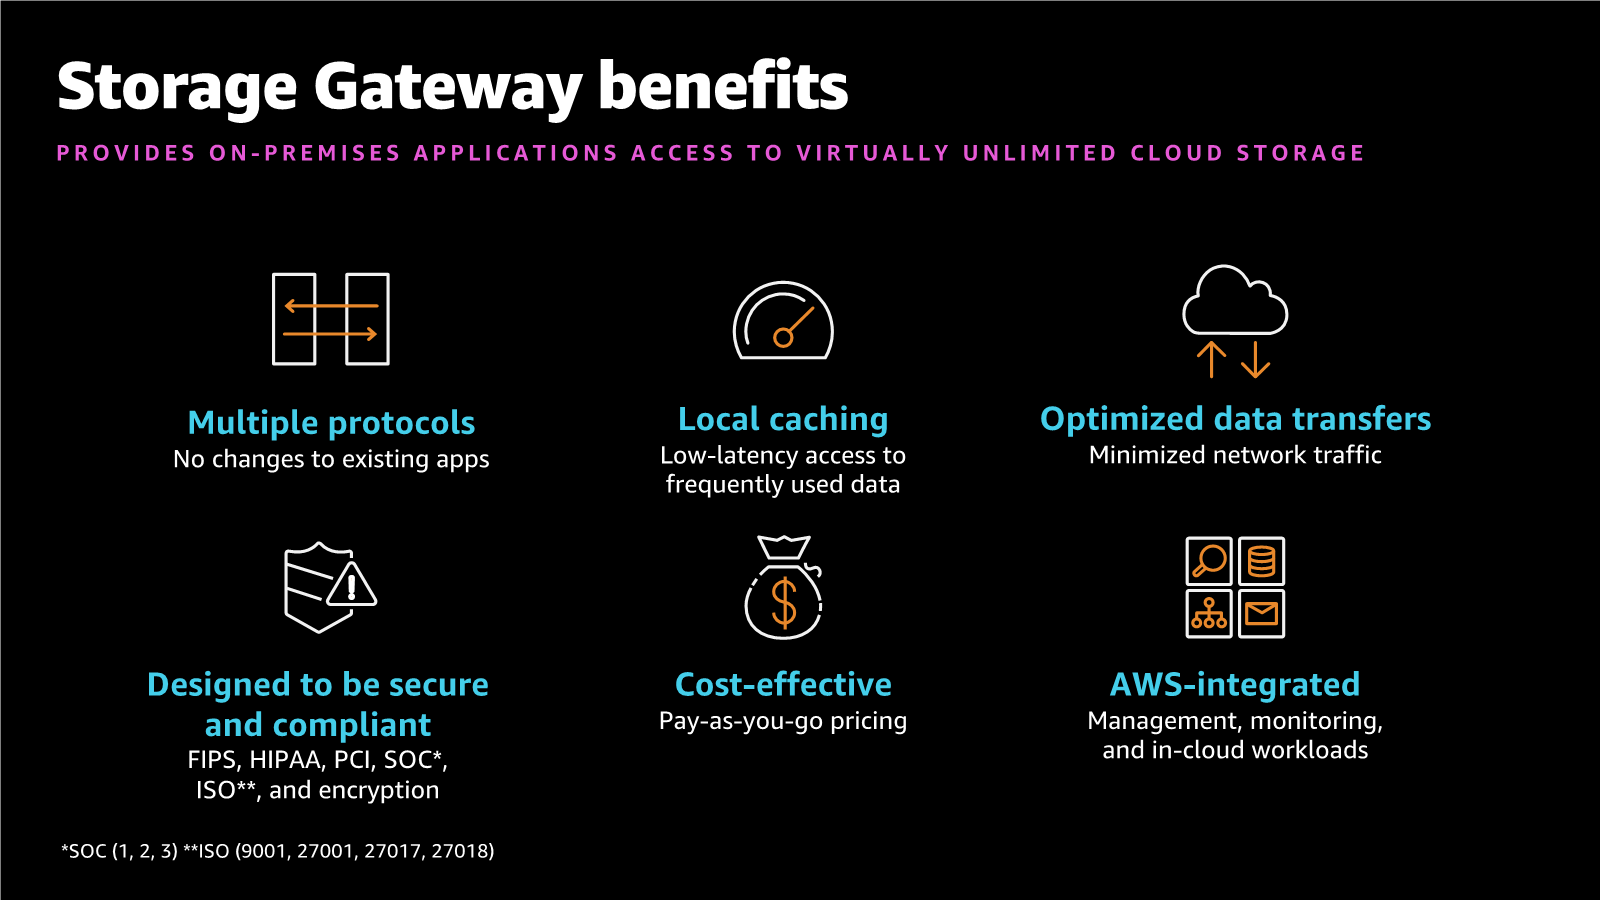 AWS Storage Gateway benefits - Multiple protocols, local caching, optimized data transfers, designed to be scure and compiant, cost-effective, and AWS-integrated